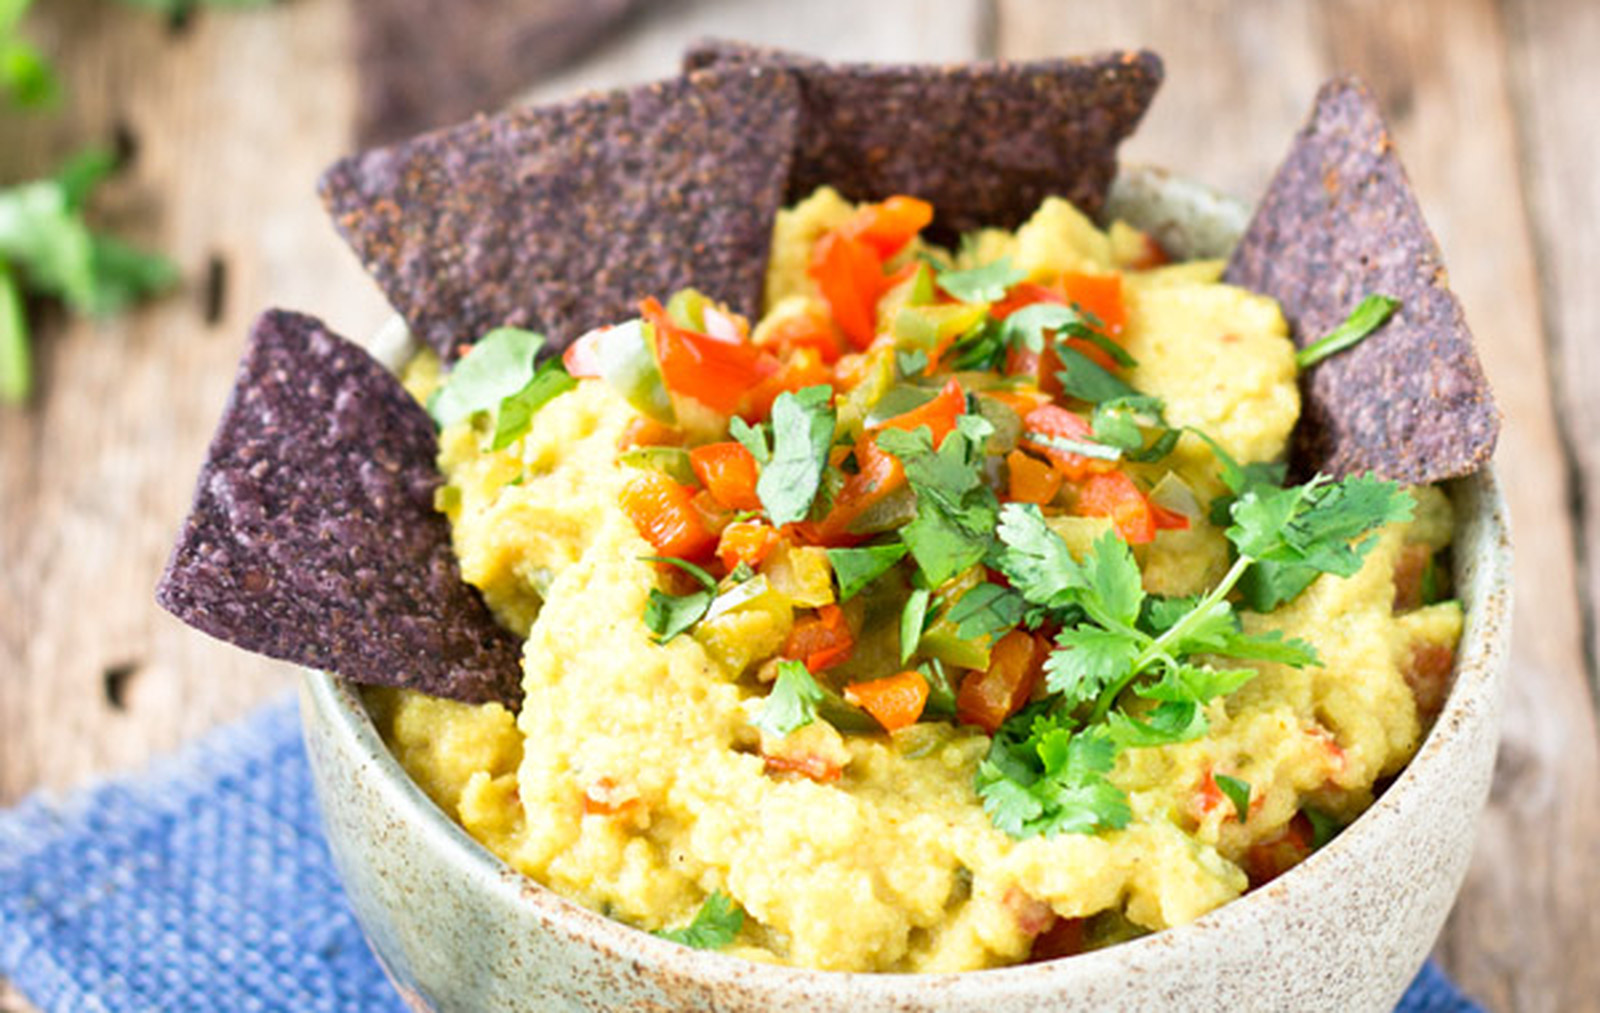 Healthy Spicy Cauliflower Dip [Vegan, Gluten-Free]